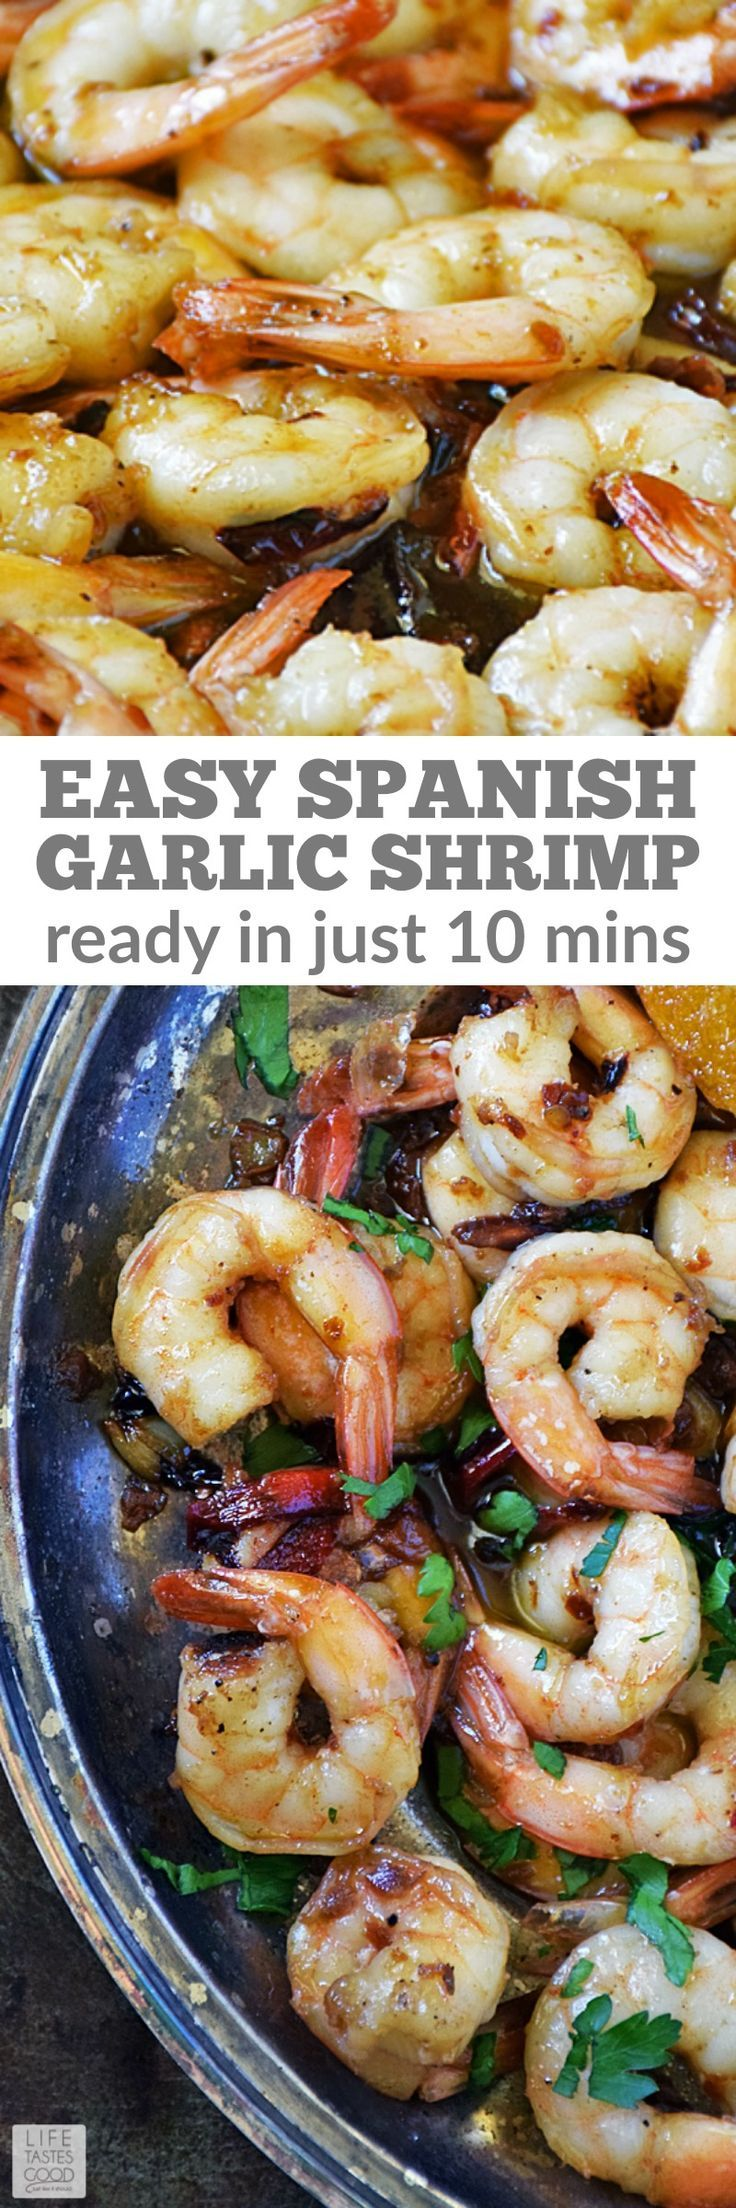 Spanish Garlic Shrimp, (Gambas al Ajillo) | by Life Tastes Good is a popular Spanish tapas because it is insanely delicious and an easy recipe to make too! Great for a party appetizer, snack, or light meal! #LTGrecipes #SundaySupper #cincodemayo #easyrecipe #shrimprecipe